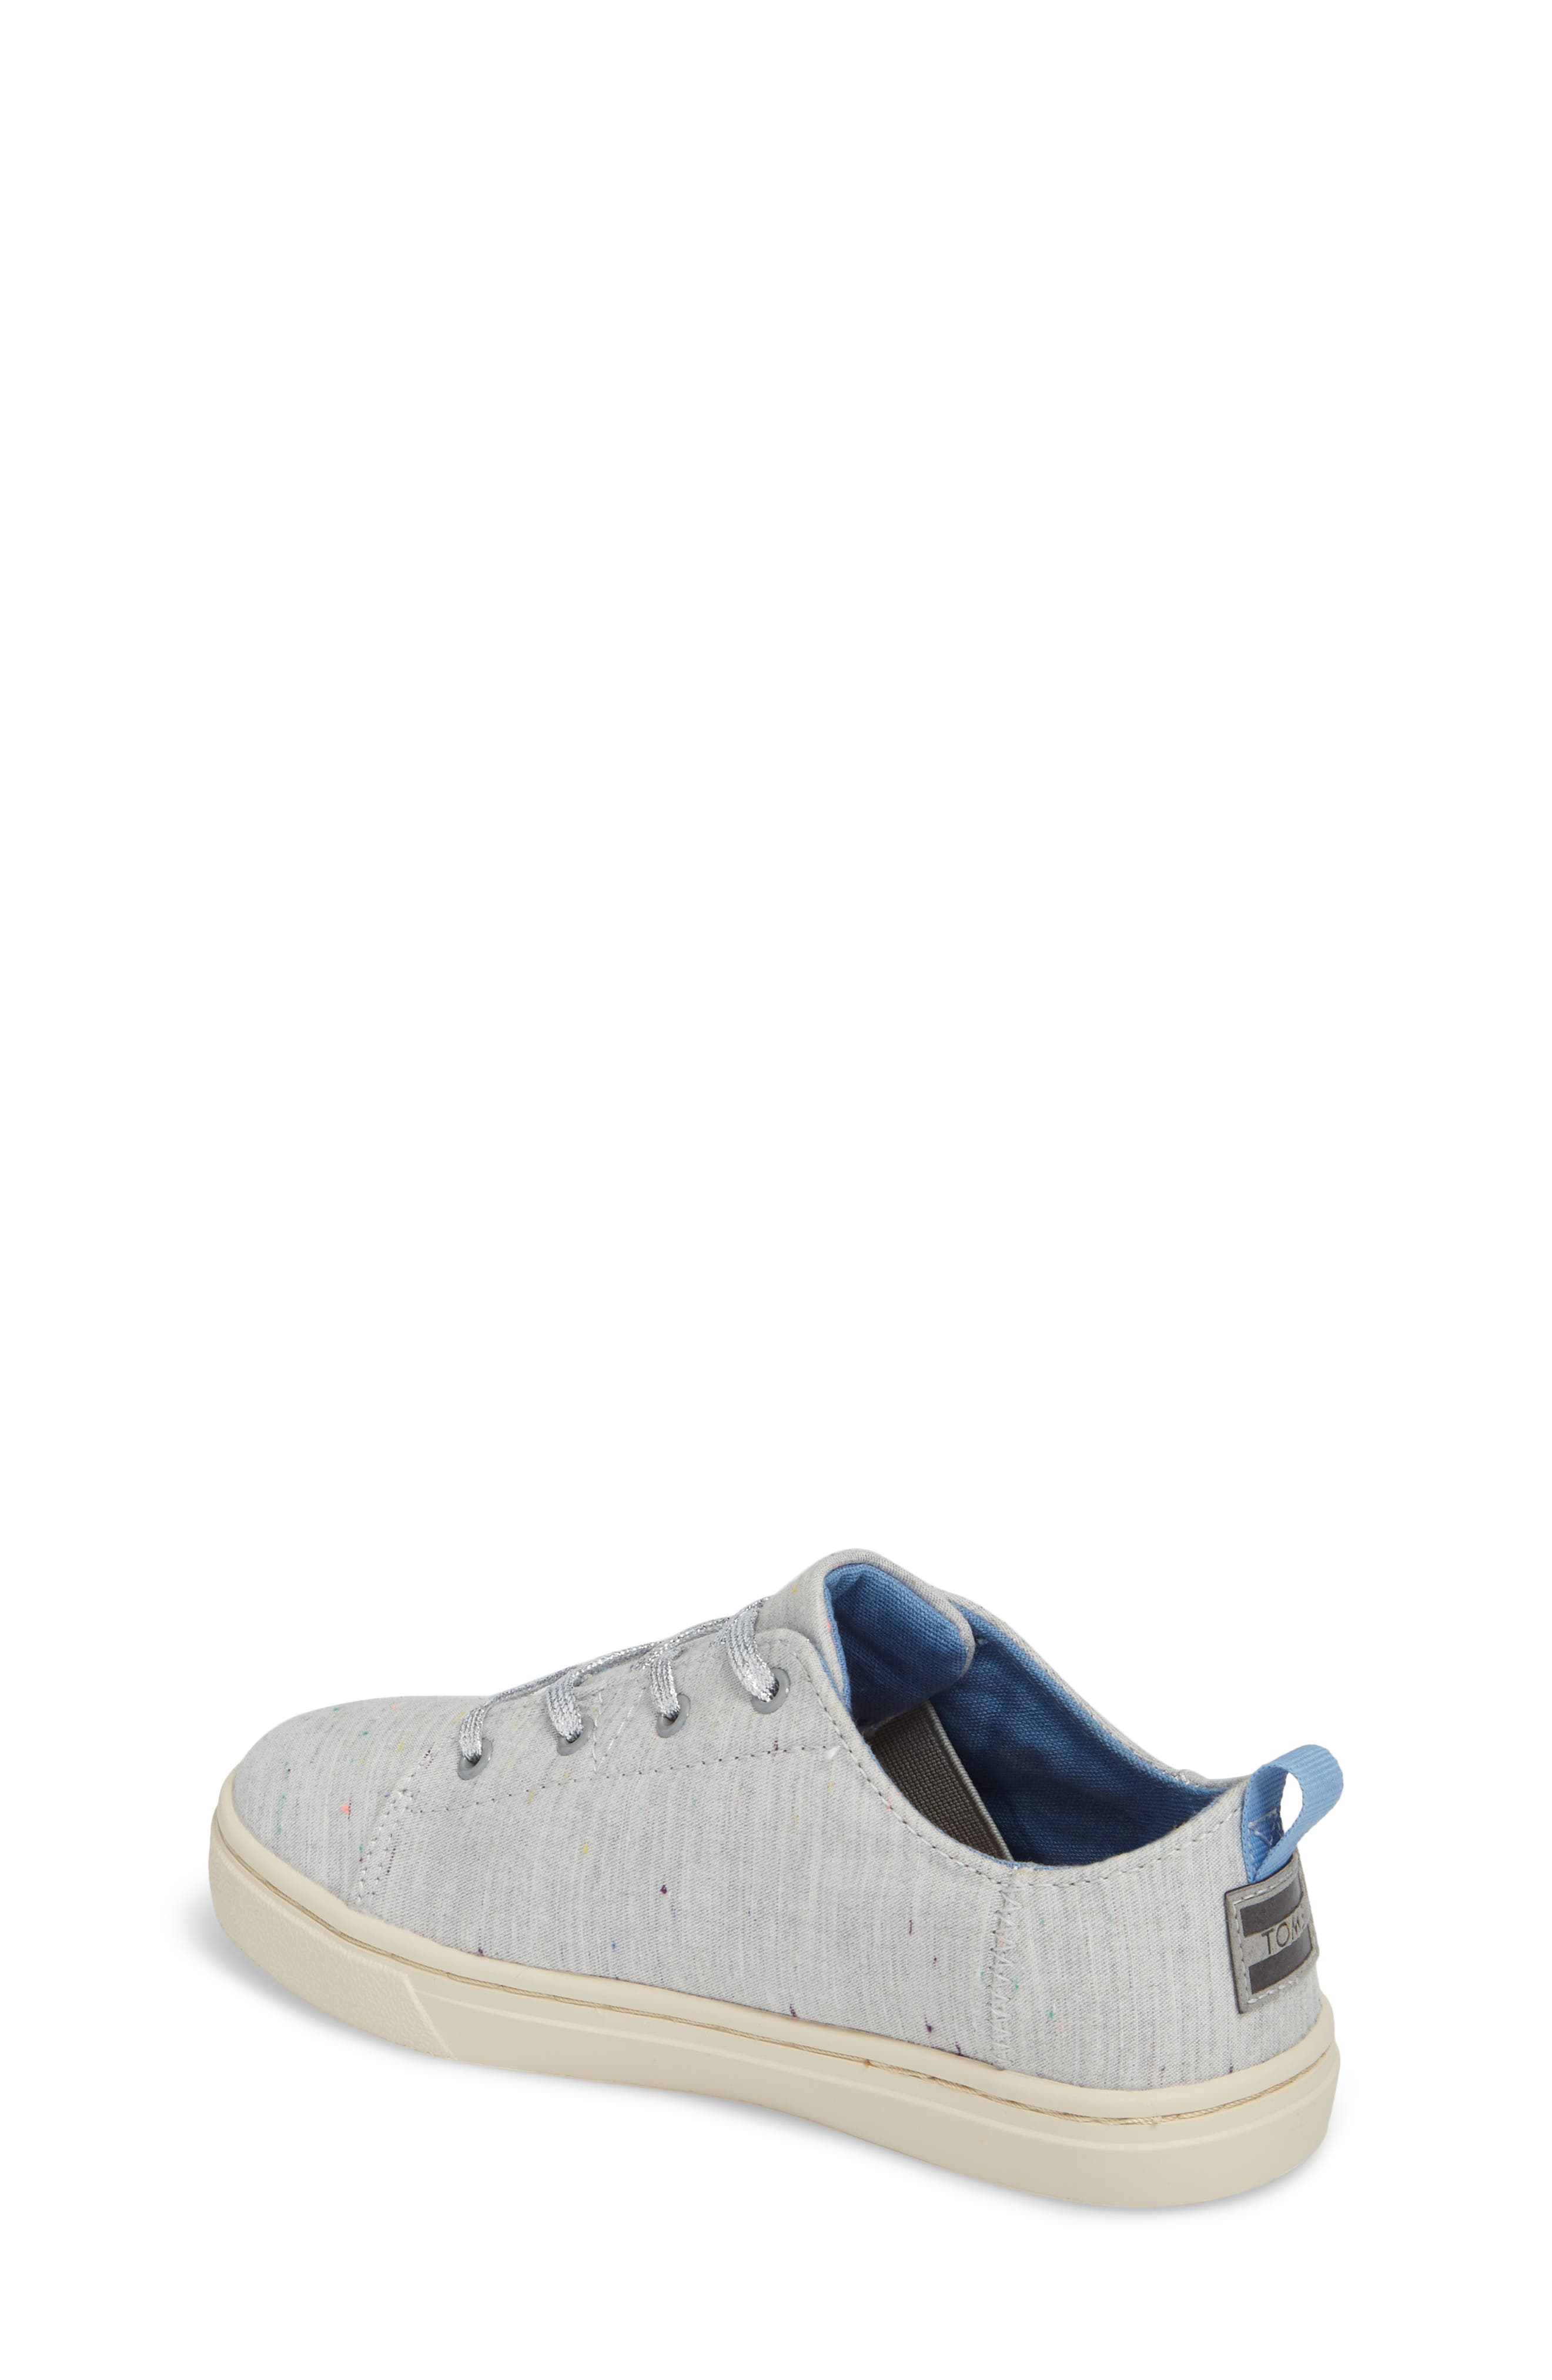 Lenny Embroidered Sneaker,                             Alternate thumbnail 2, color,                             020